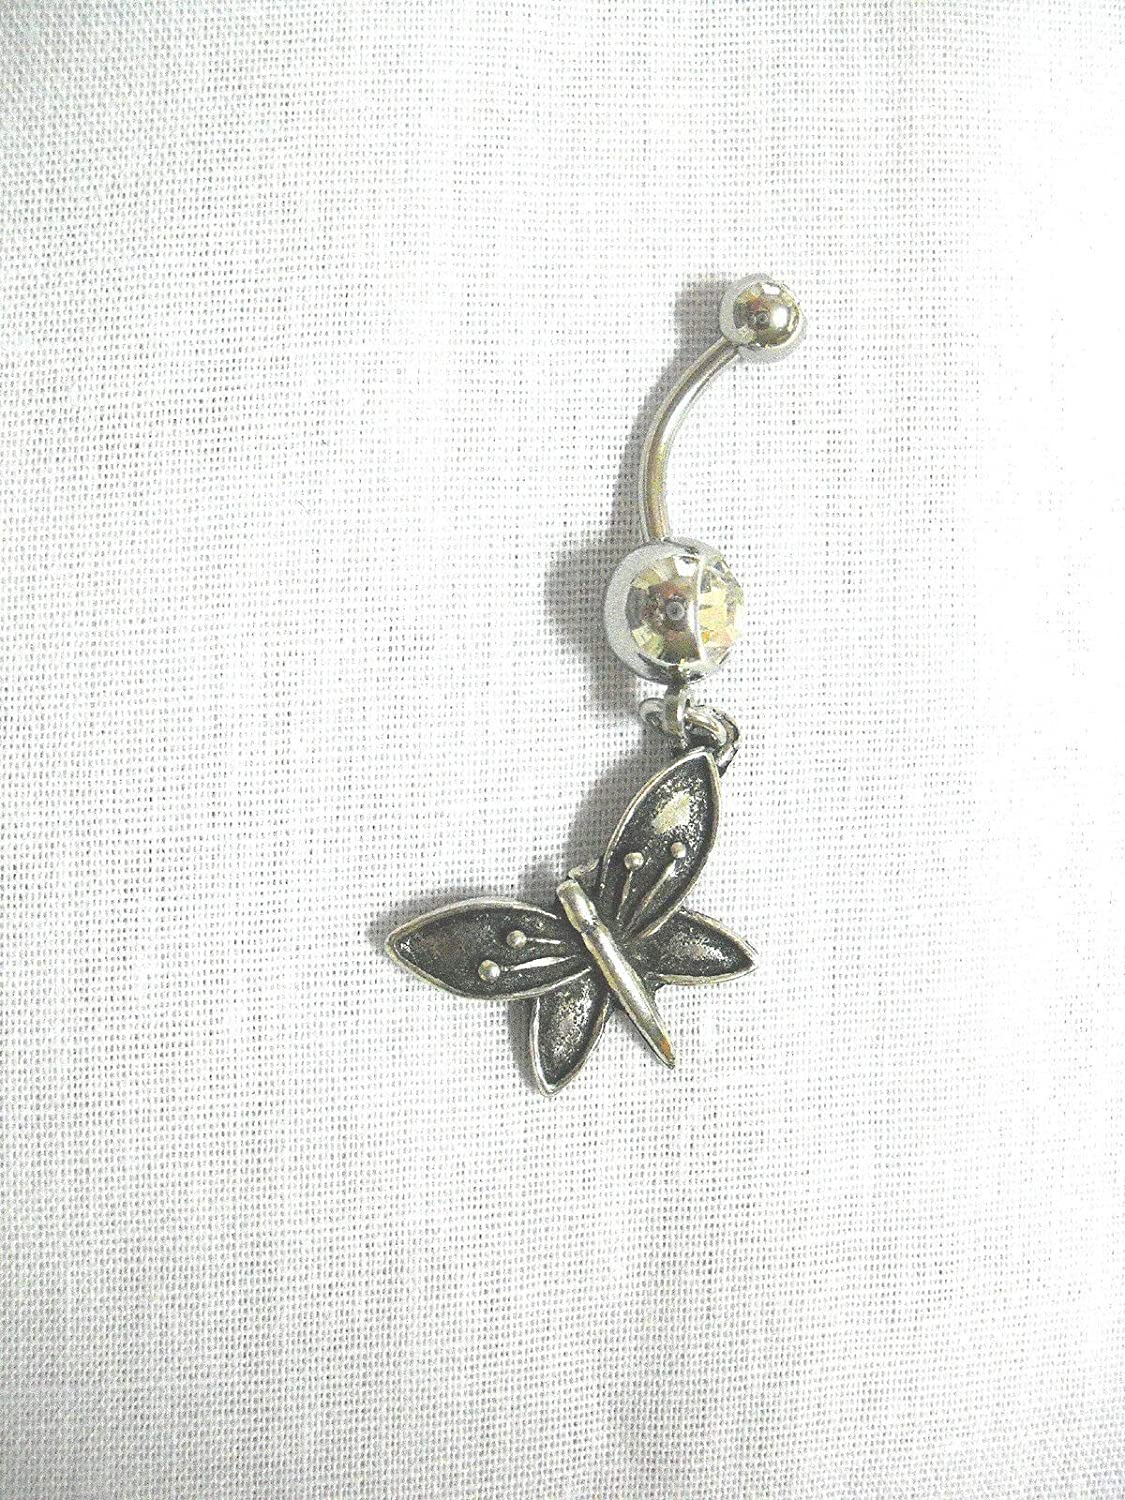 New Antiqued Angled Butterfly Dangling Charm ON Clear Belly Ring KEZ-3163